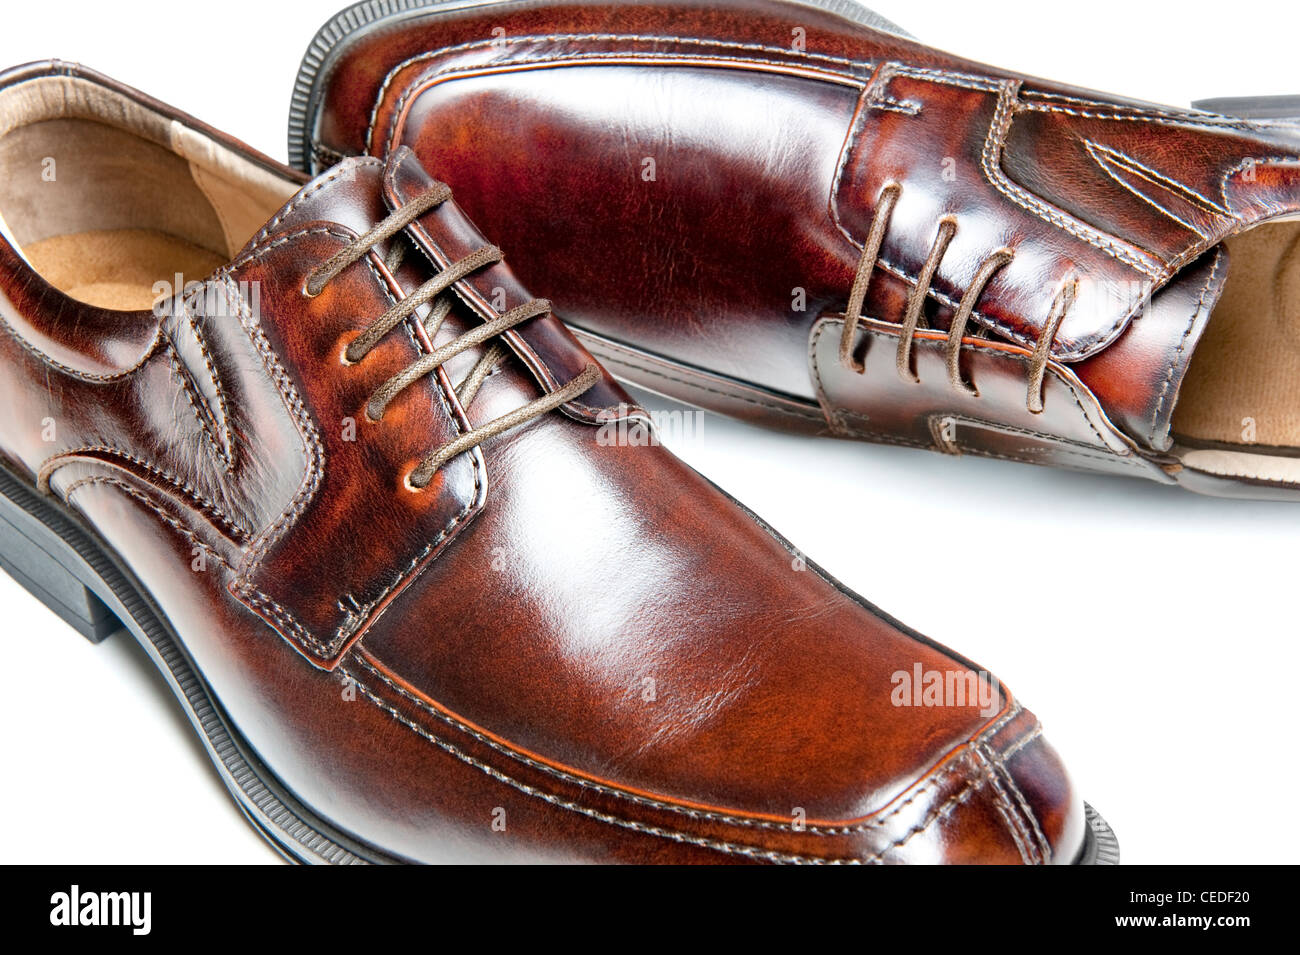 1f384838 Close up of a new pair of brown leather dress shoes Stock Photo ...